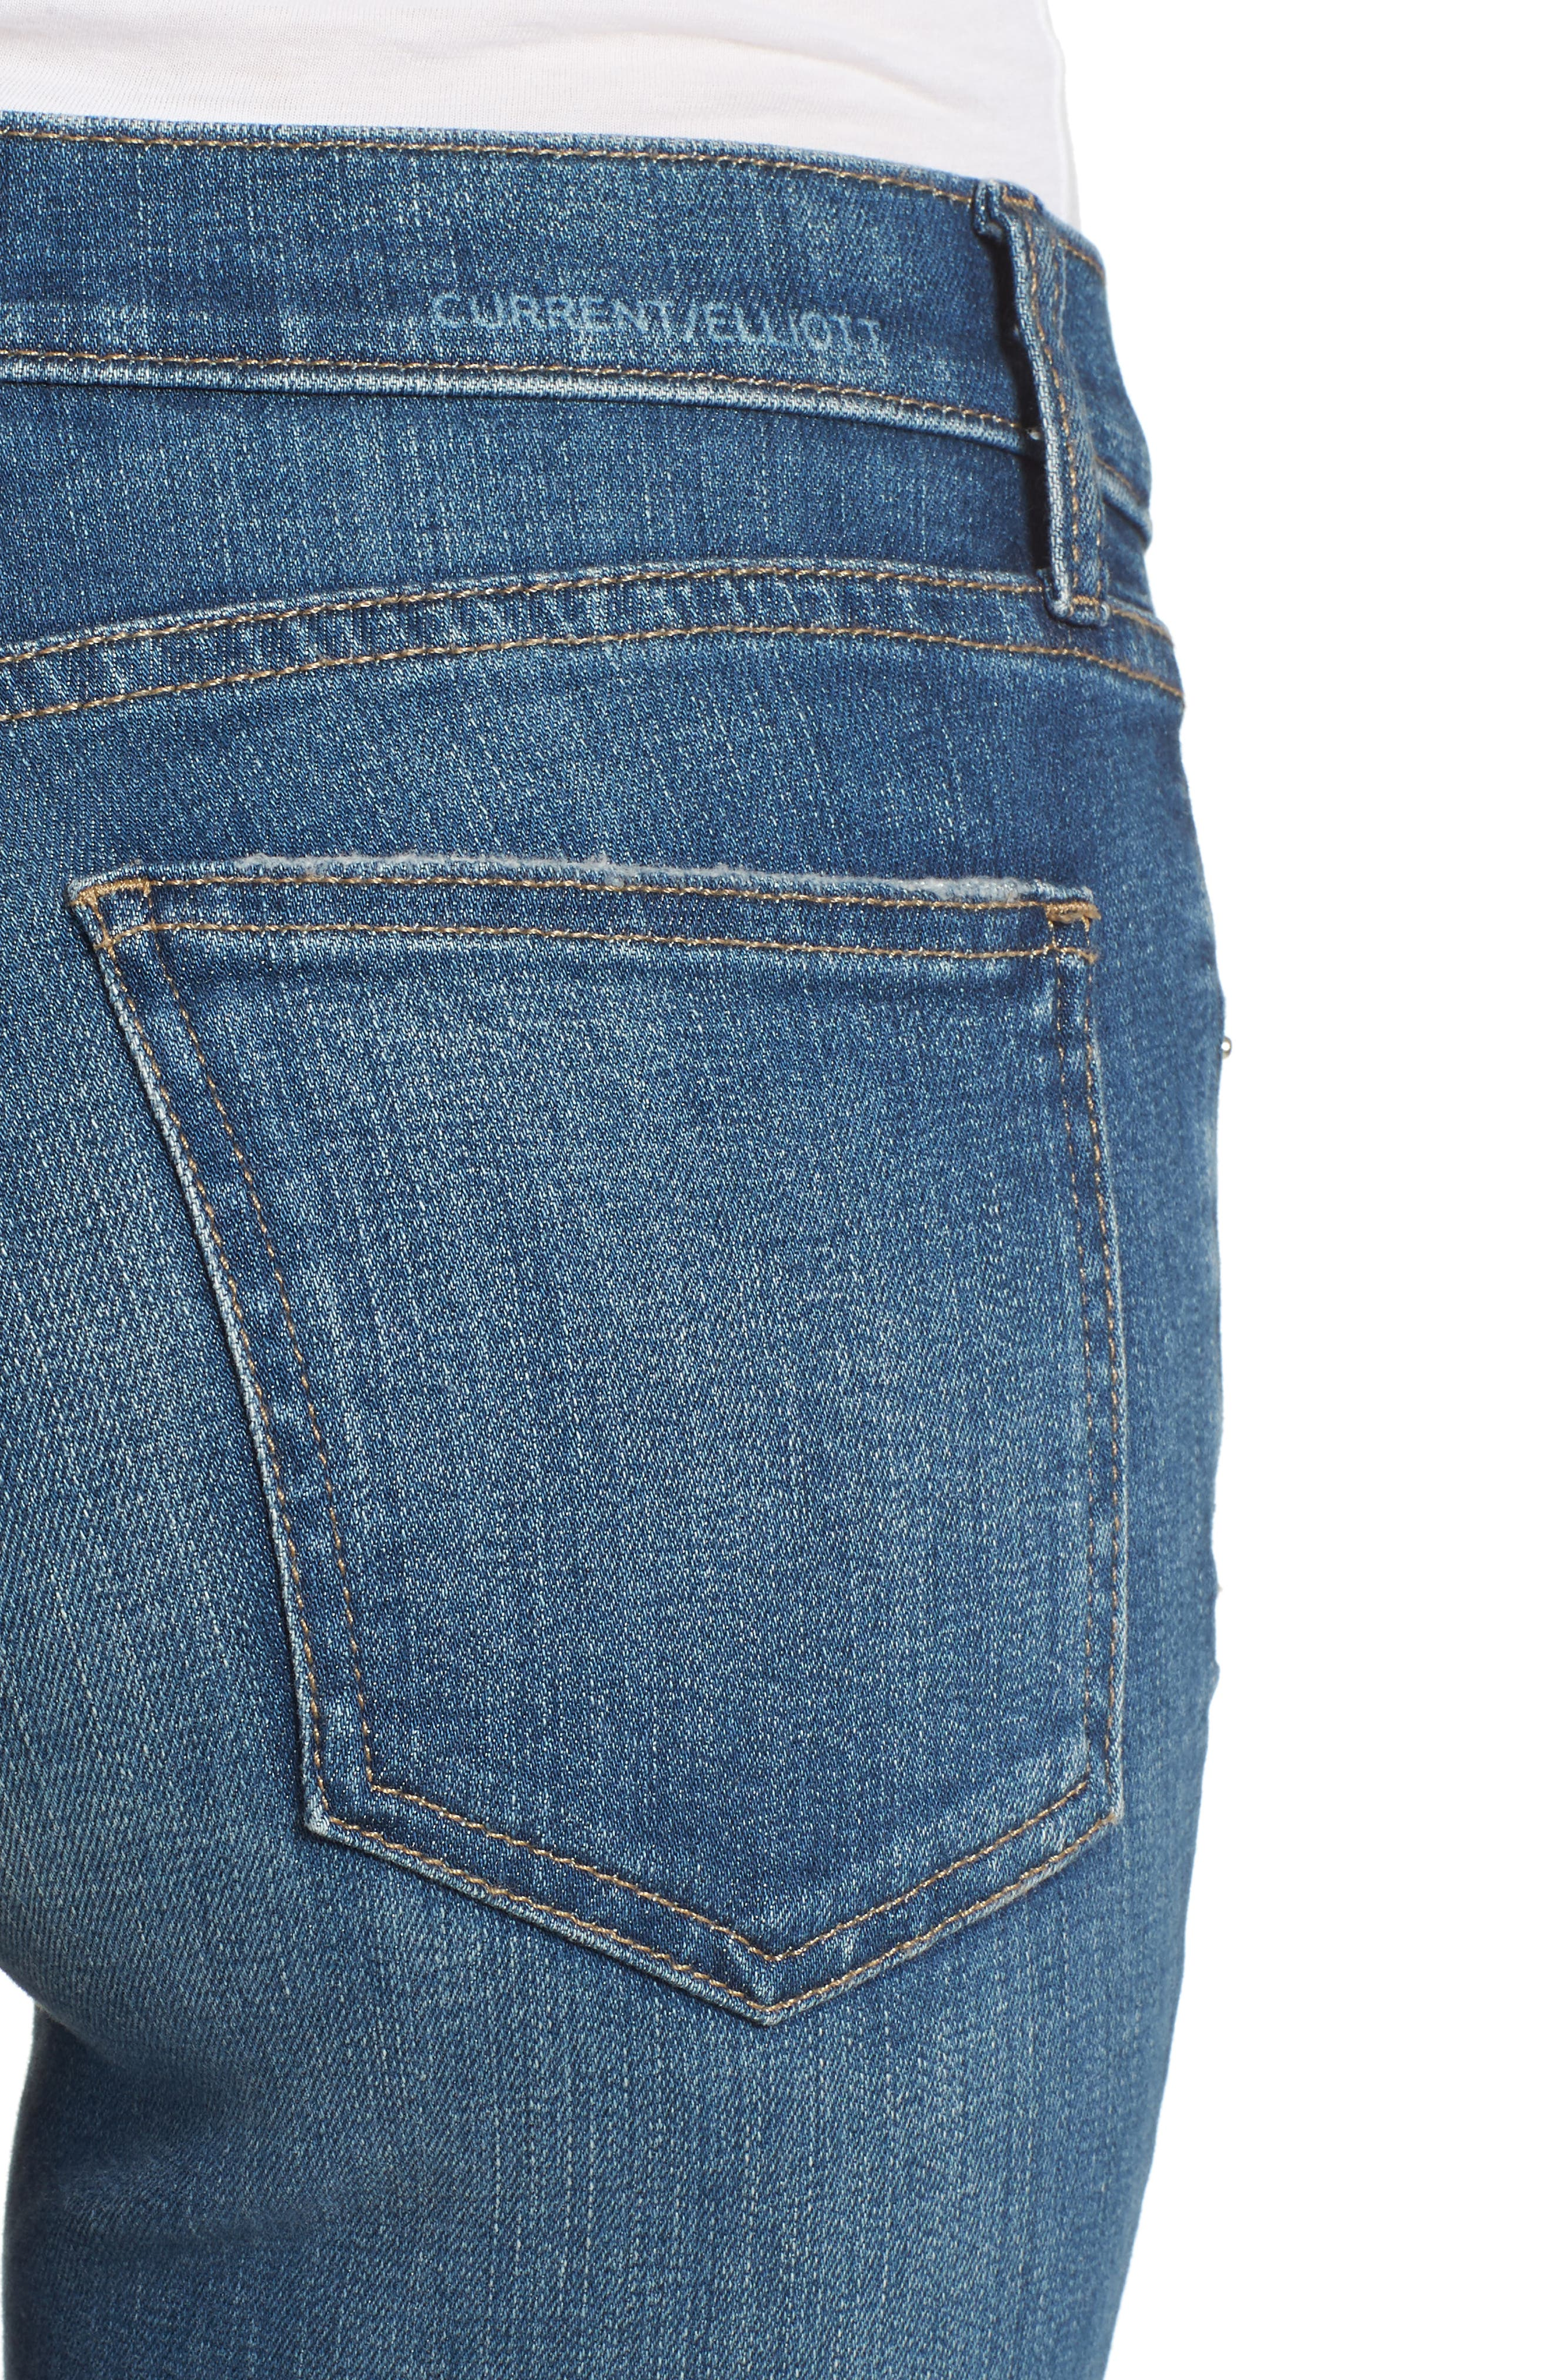 The High Waist Ankle Skinny Jeans,                             Alternate thumbnail 4, color,                             499